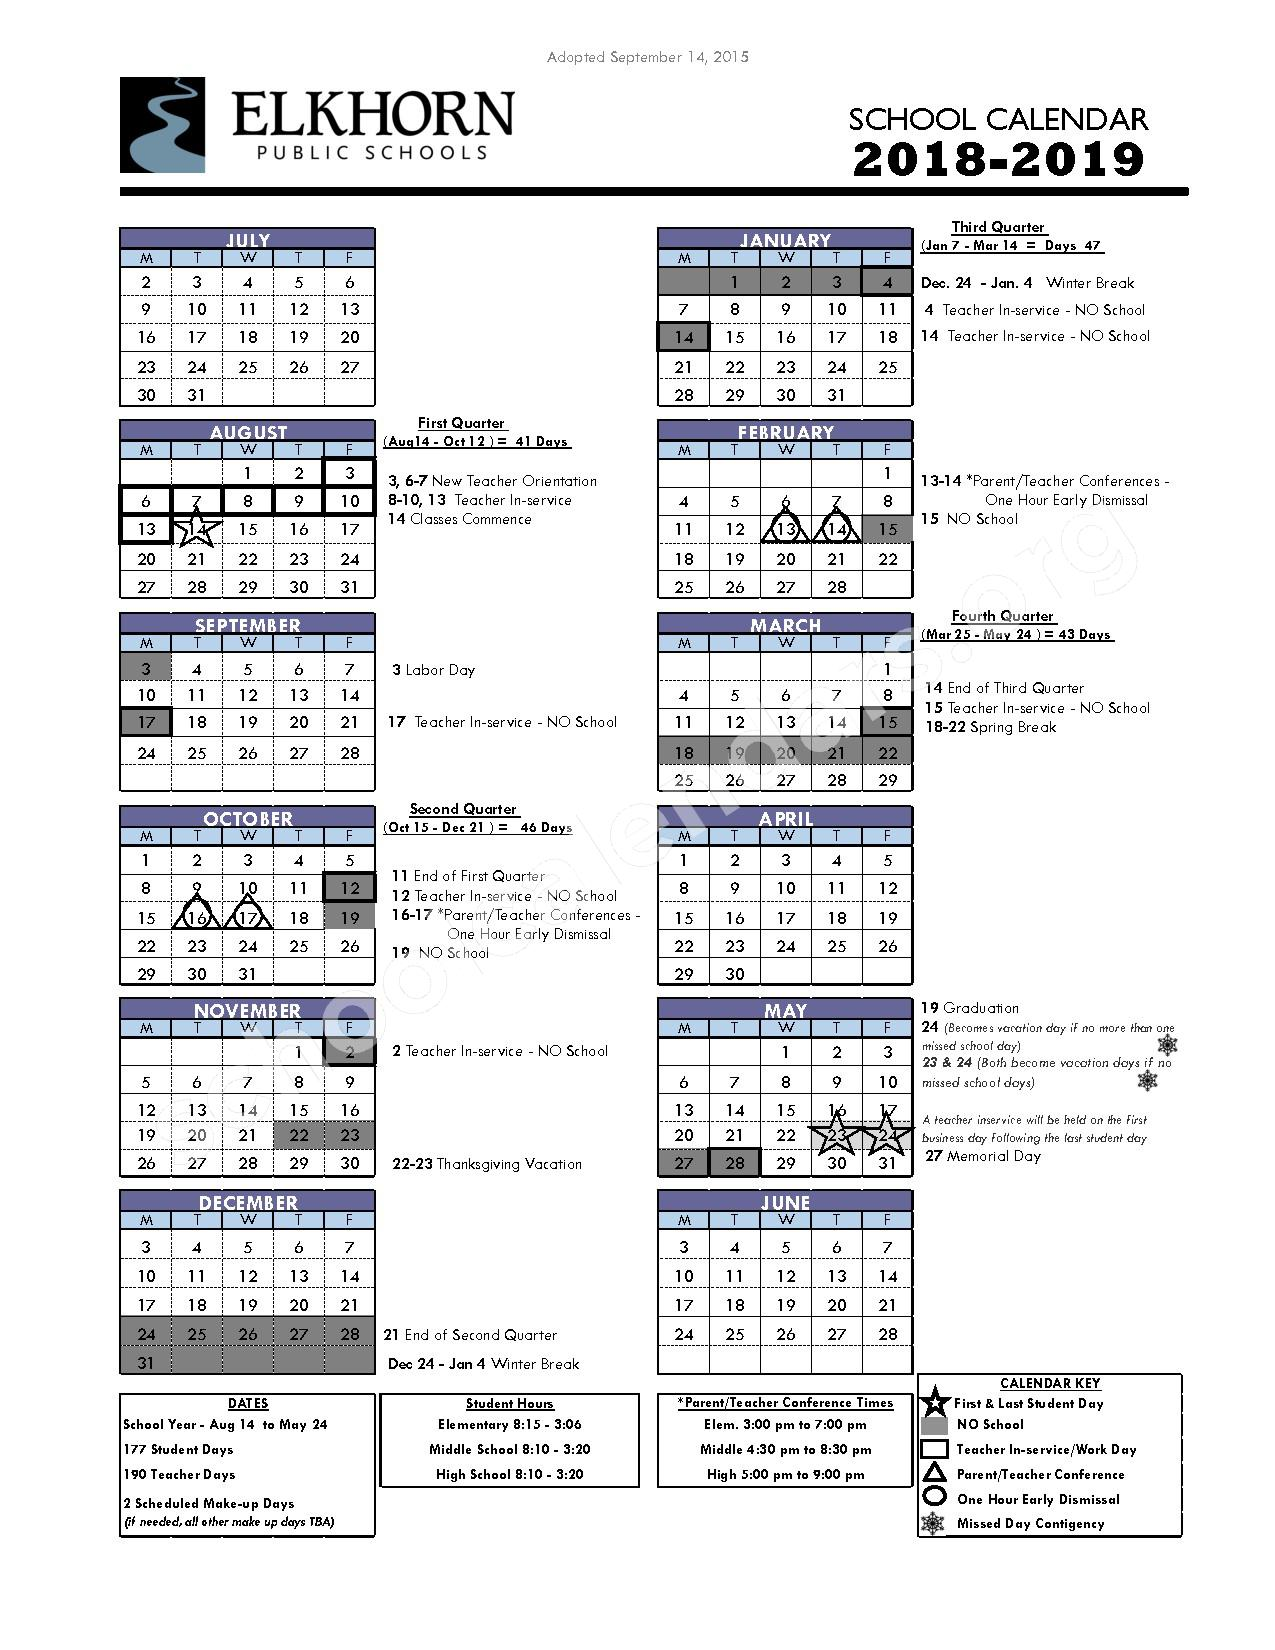 2018 - 2019 District Calendar – Manchester Elementary School – page 1